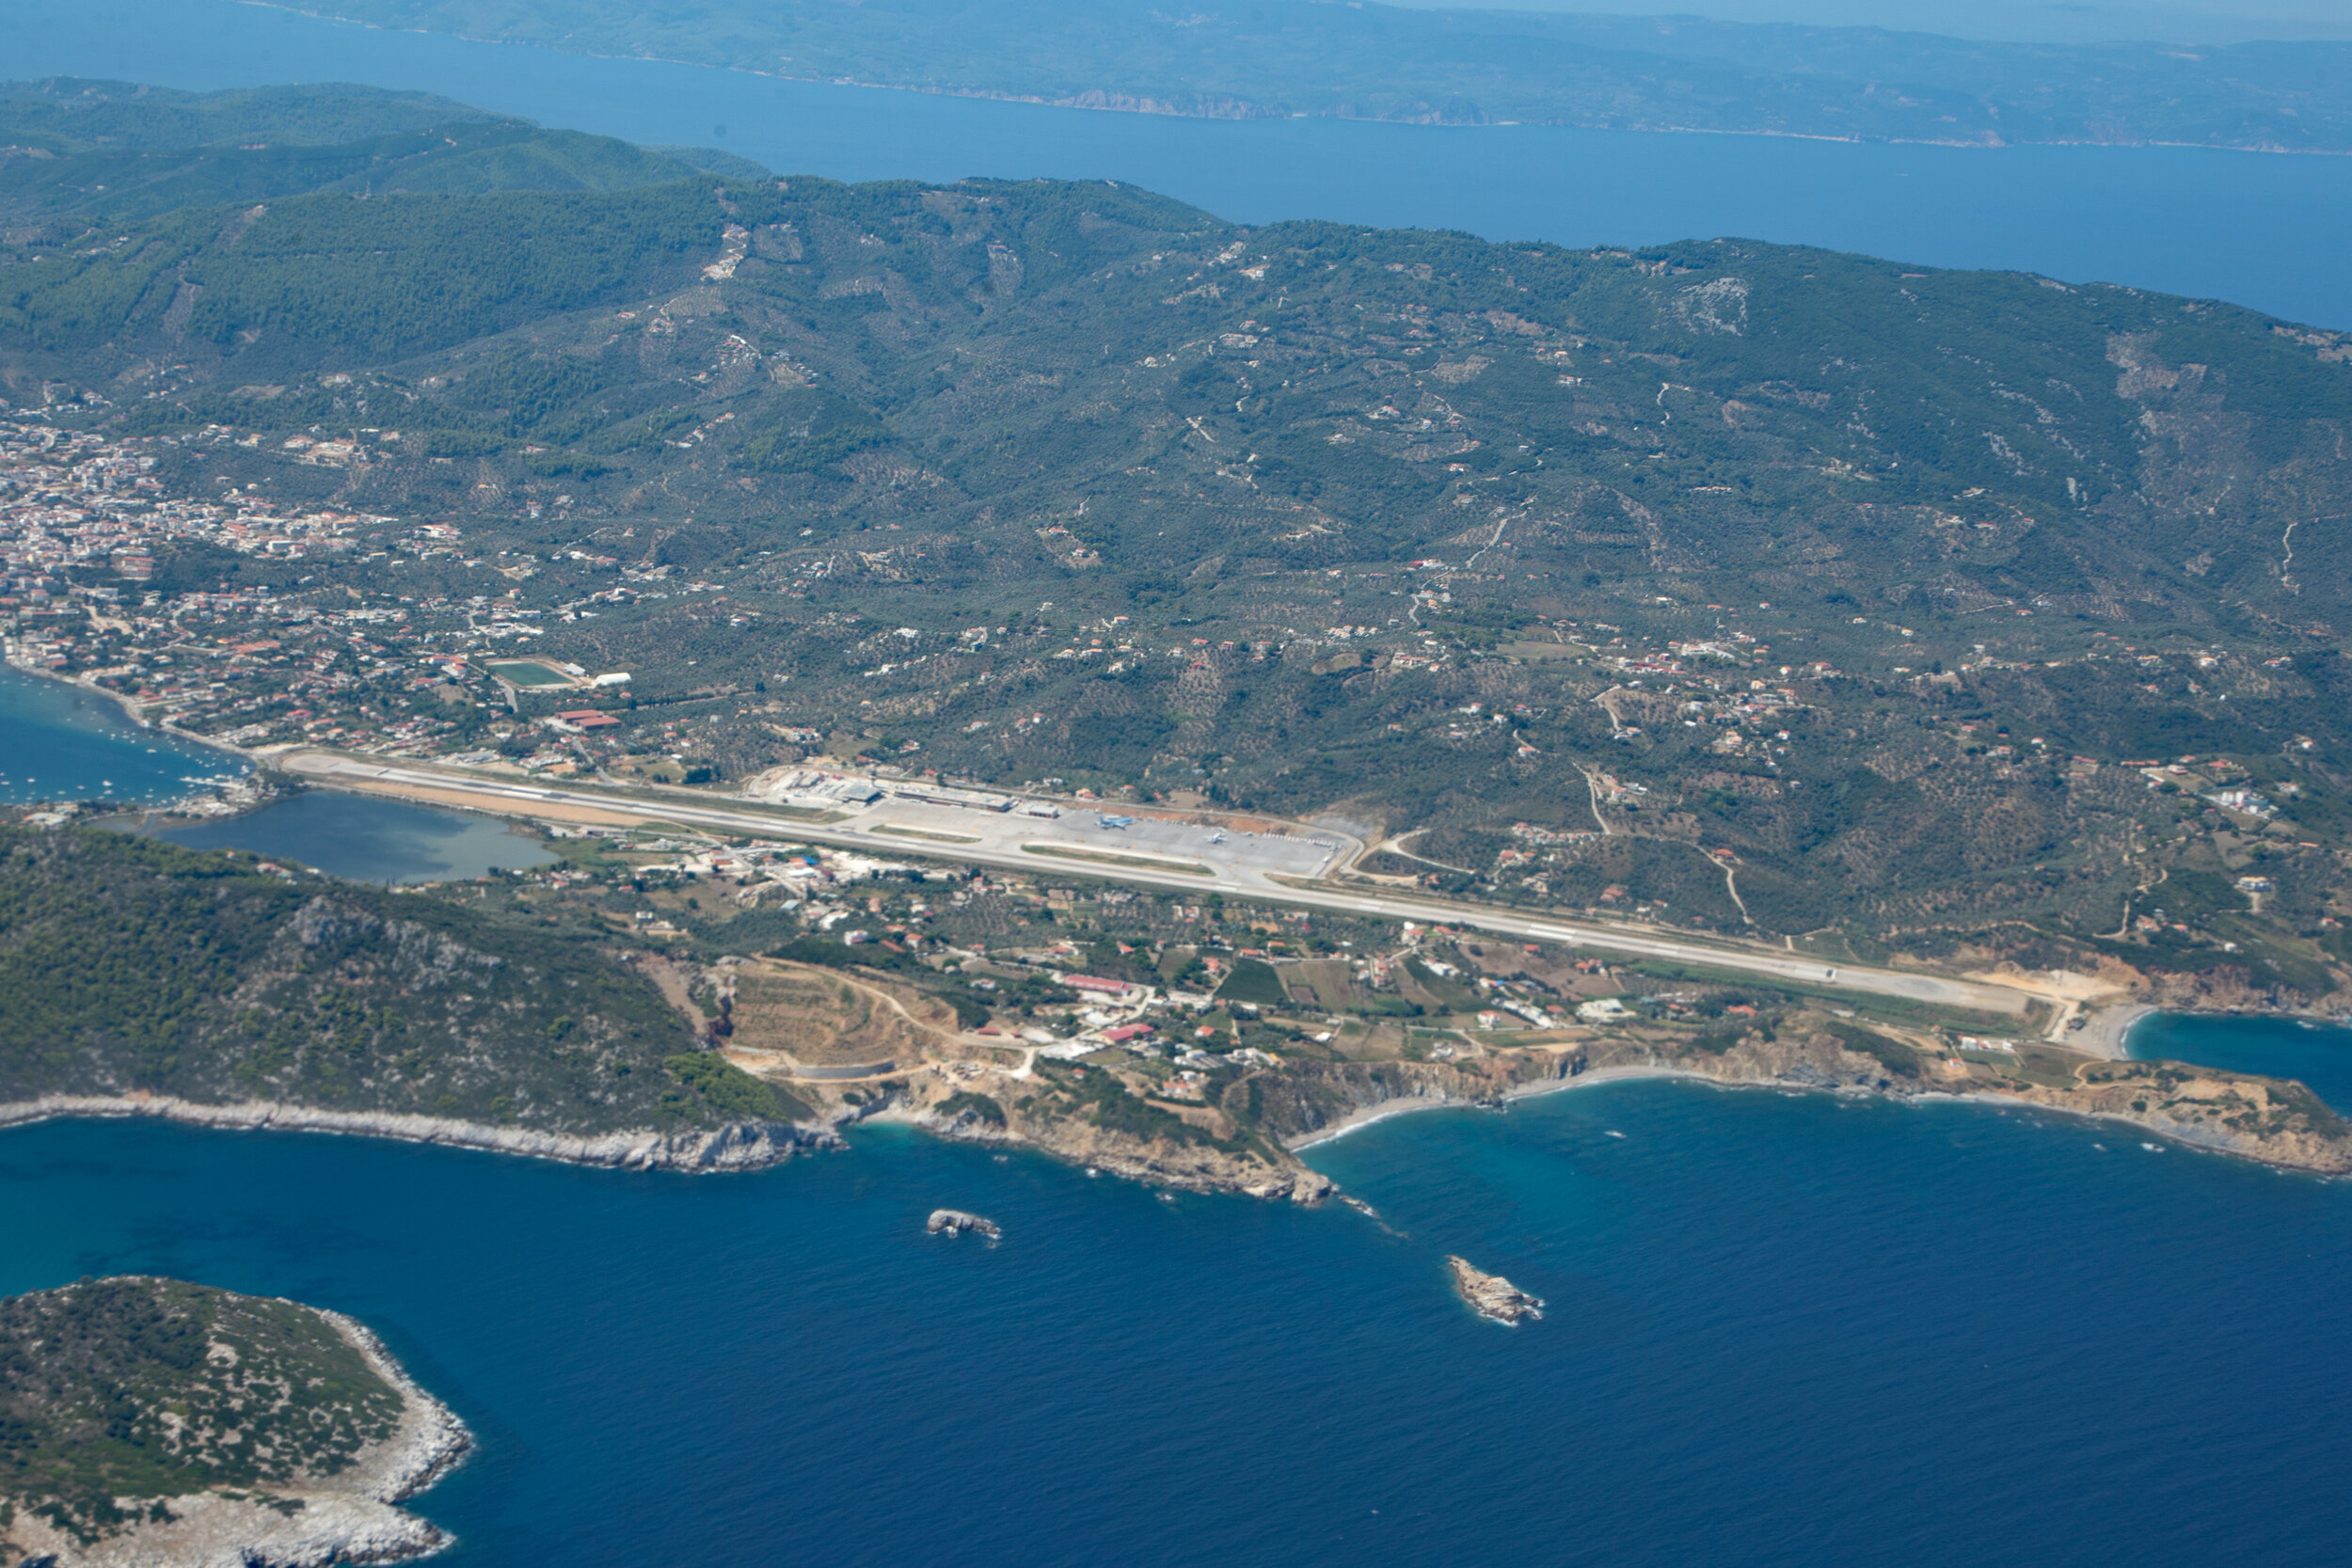 An aerial view of the airport taken by Peter H from a TUI B757-200 in Sept 2019. Skiathos town and the Amaretto Cafe Bar are located to the left as you look at the Runway.